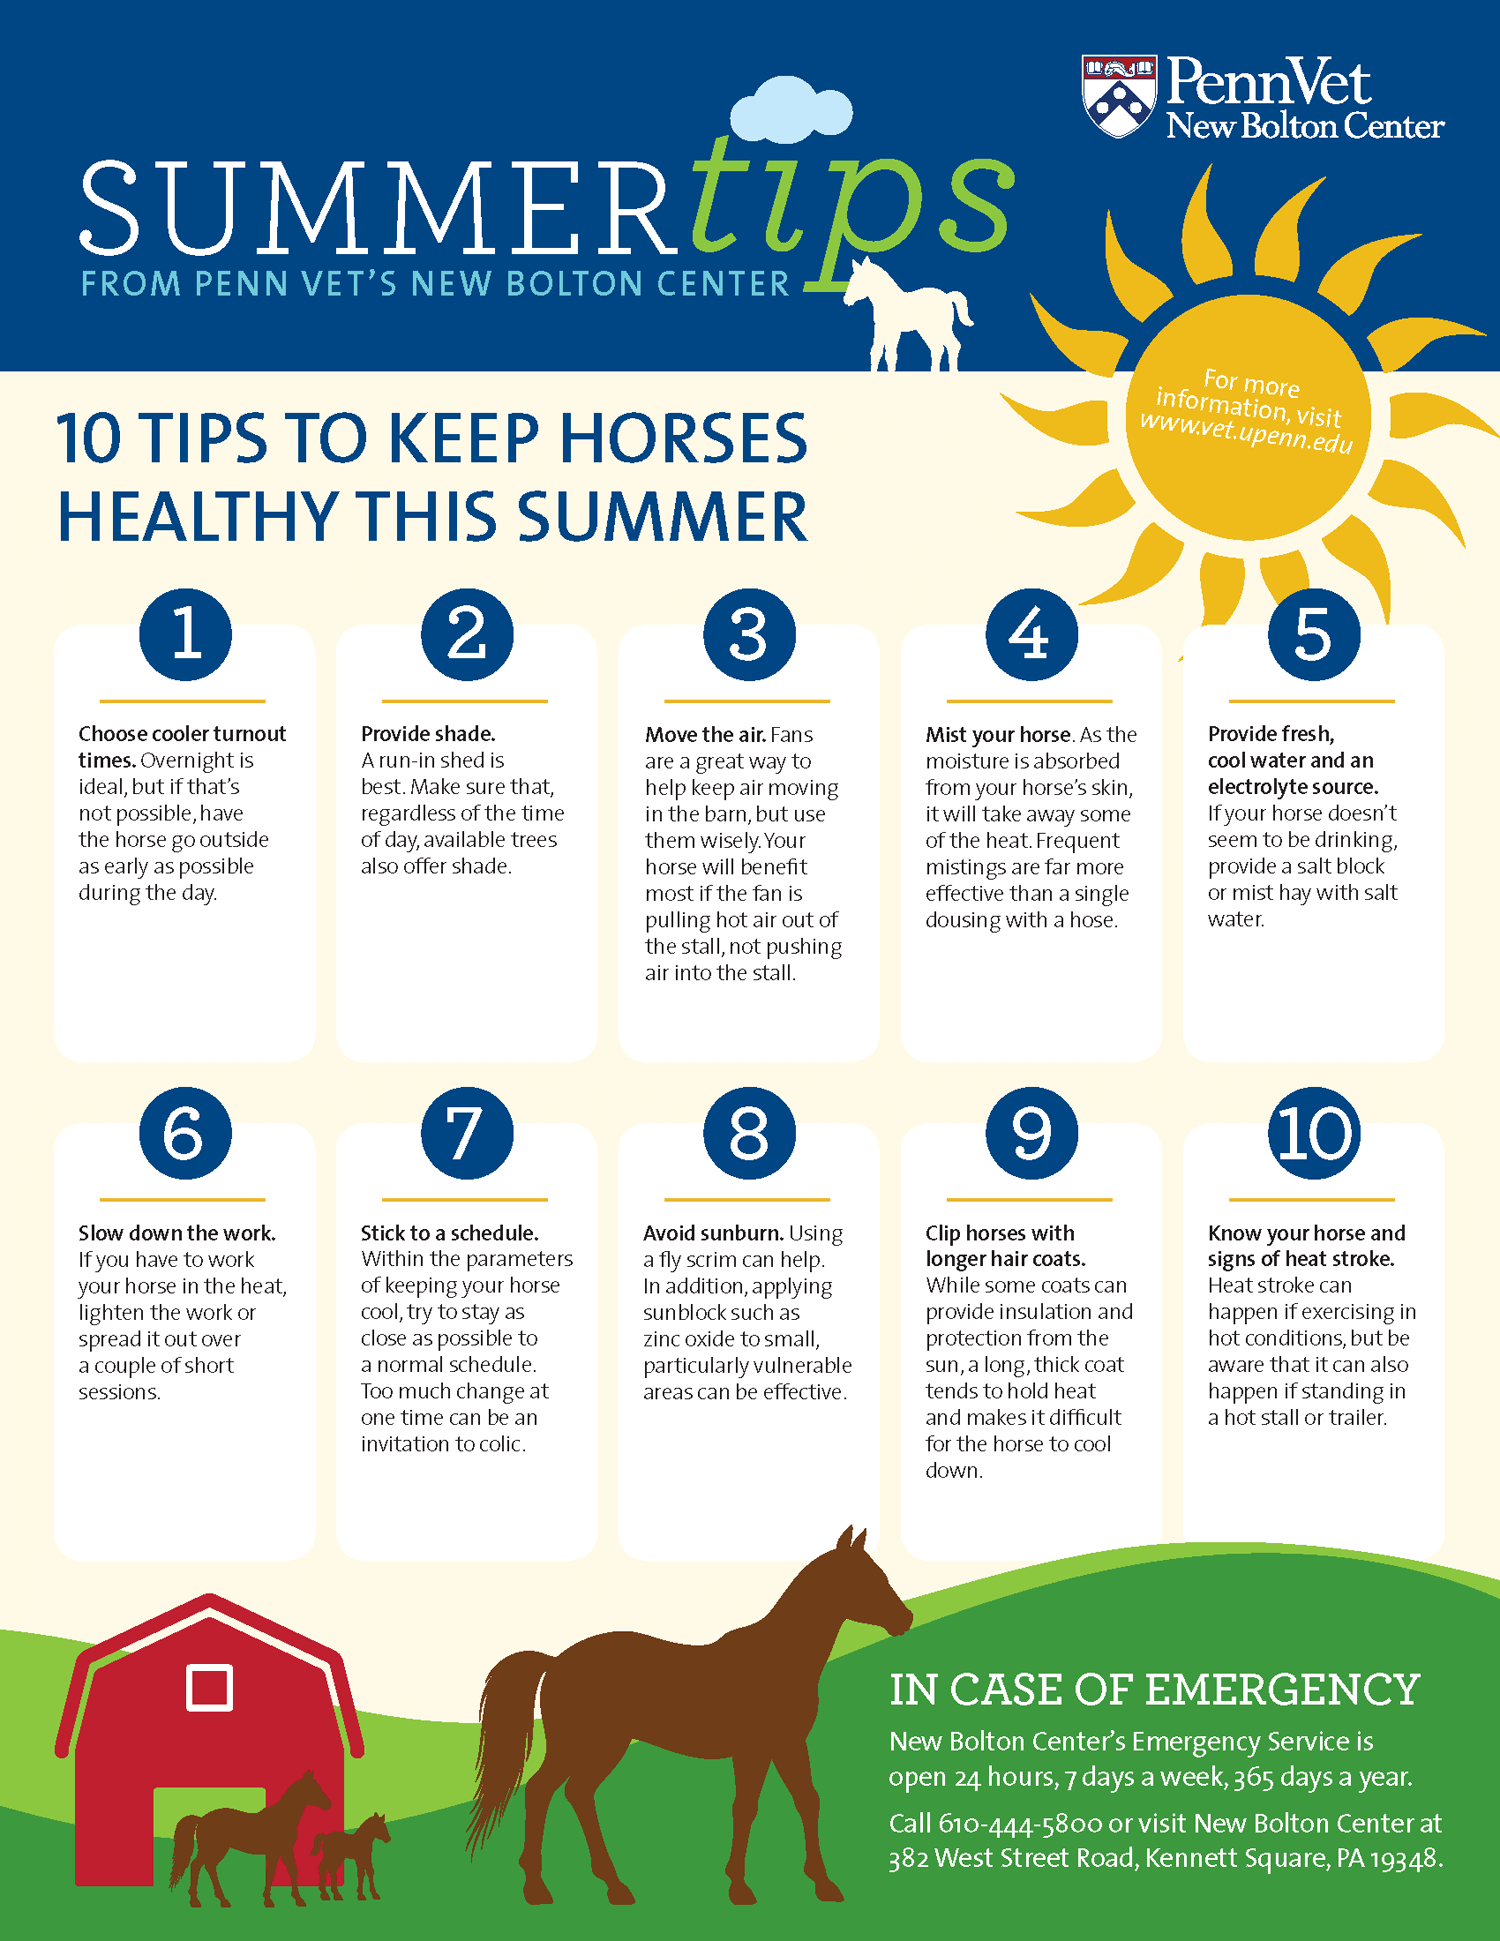 Summer Heat Tips for Horses